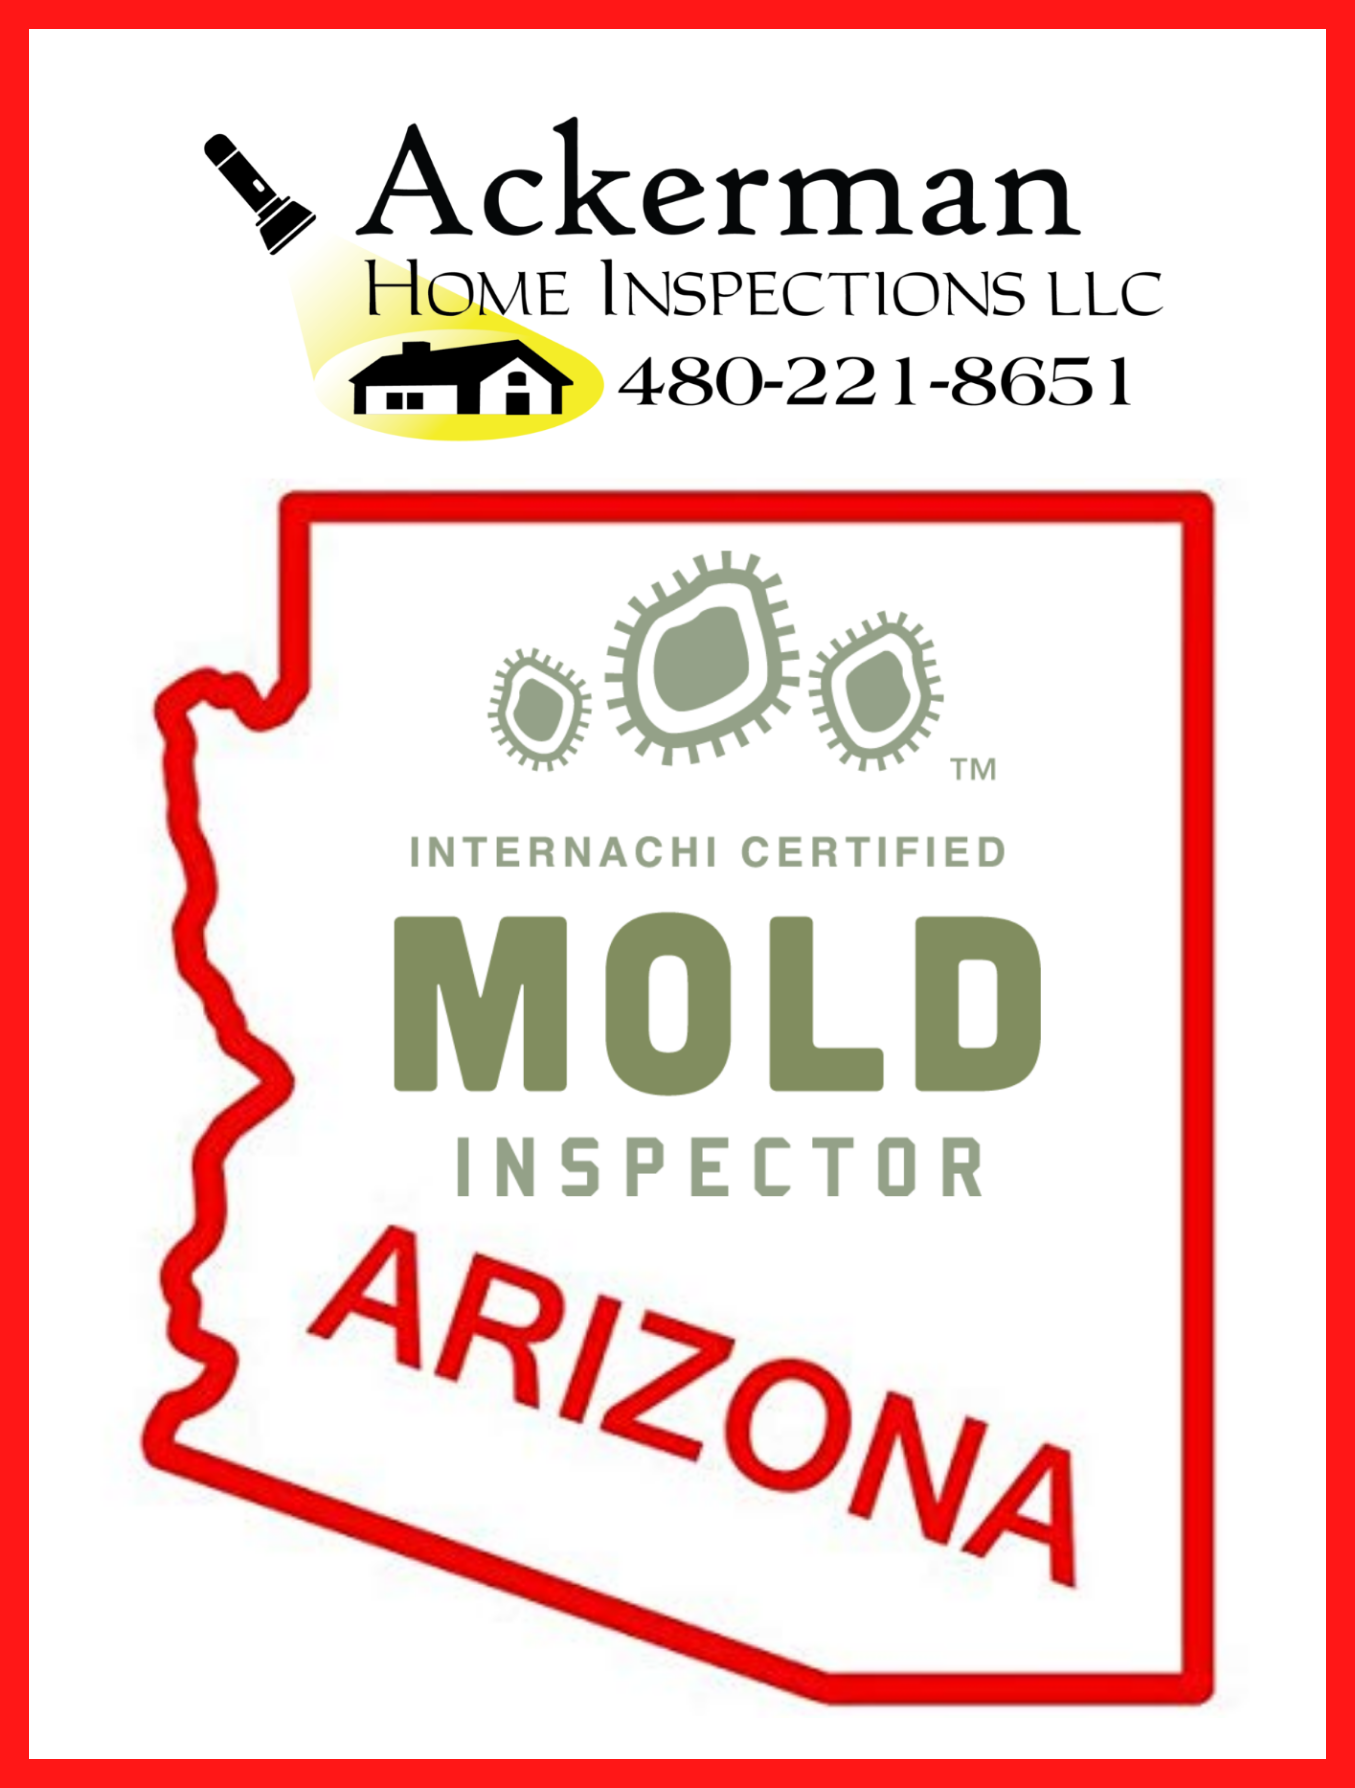 People often try to convince me that mold does not grow here in Phoenix because it's so dry. Arizona however, is one of the top five states in the nation for mold growth.